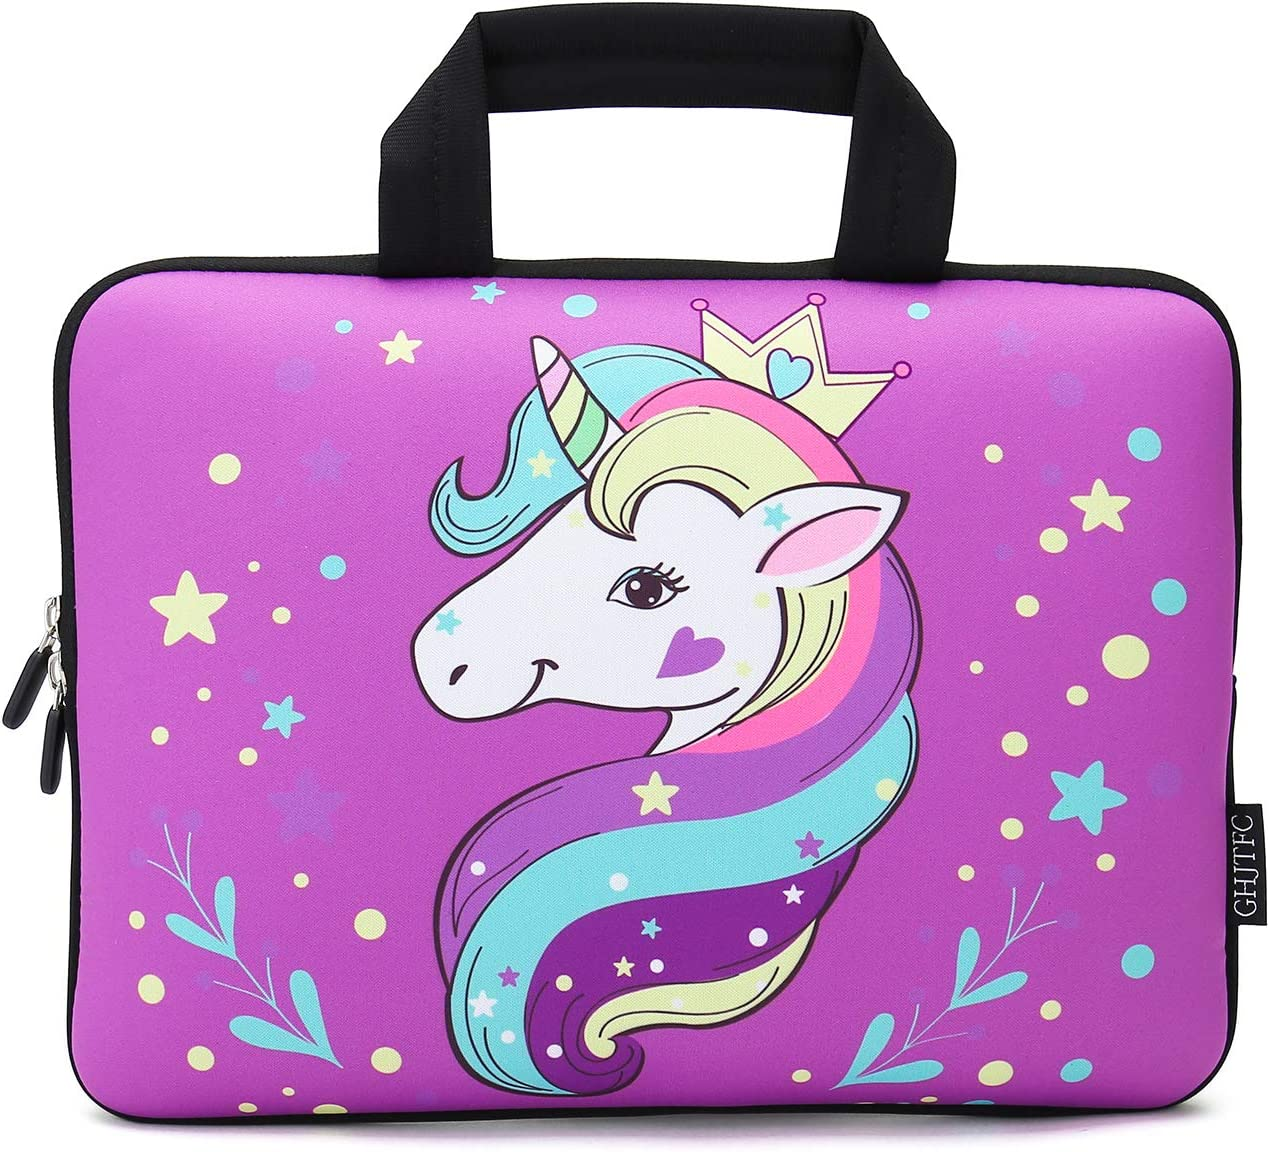 "12 Inch Laptop Sleeve Carrying Bag Protective Case Neoprene Sleeve Tote Tablet Cover Notebook Briefcase Bag with Handle for Women Men(Unicorn,12"")"